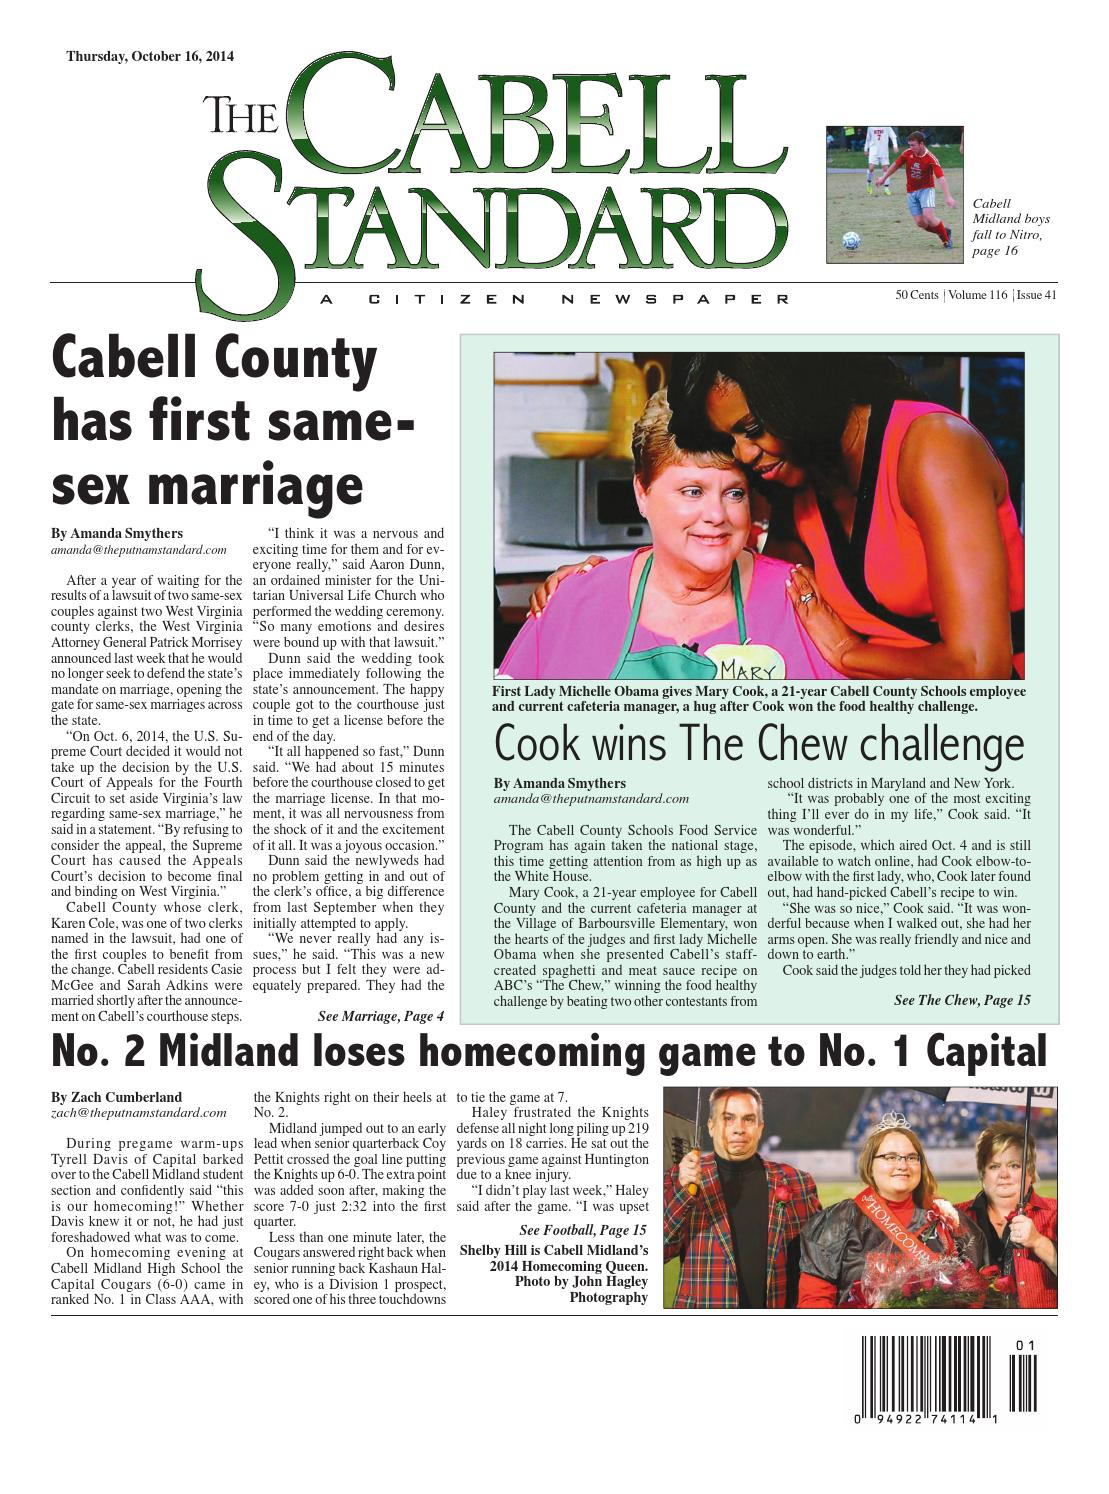 The Cabell Standard Oct  16, 2014 by PC Newspapers - issuu